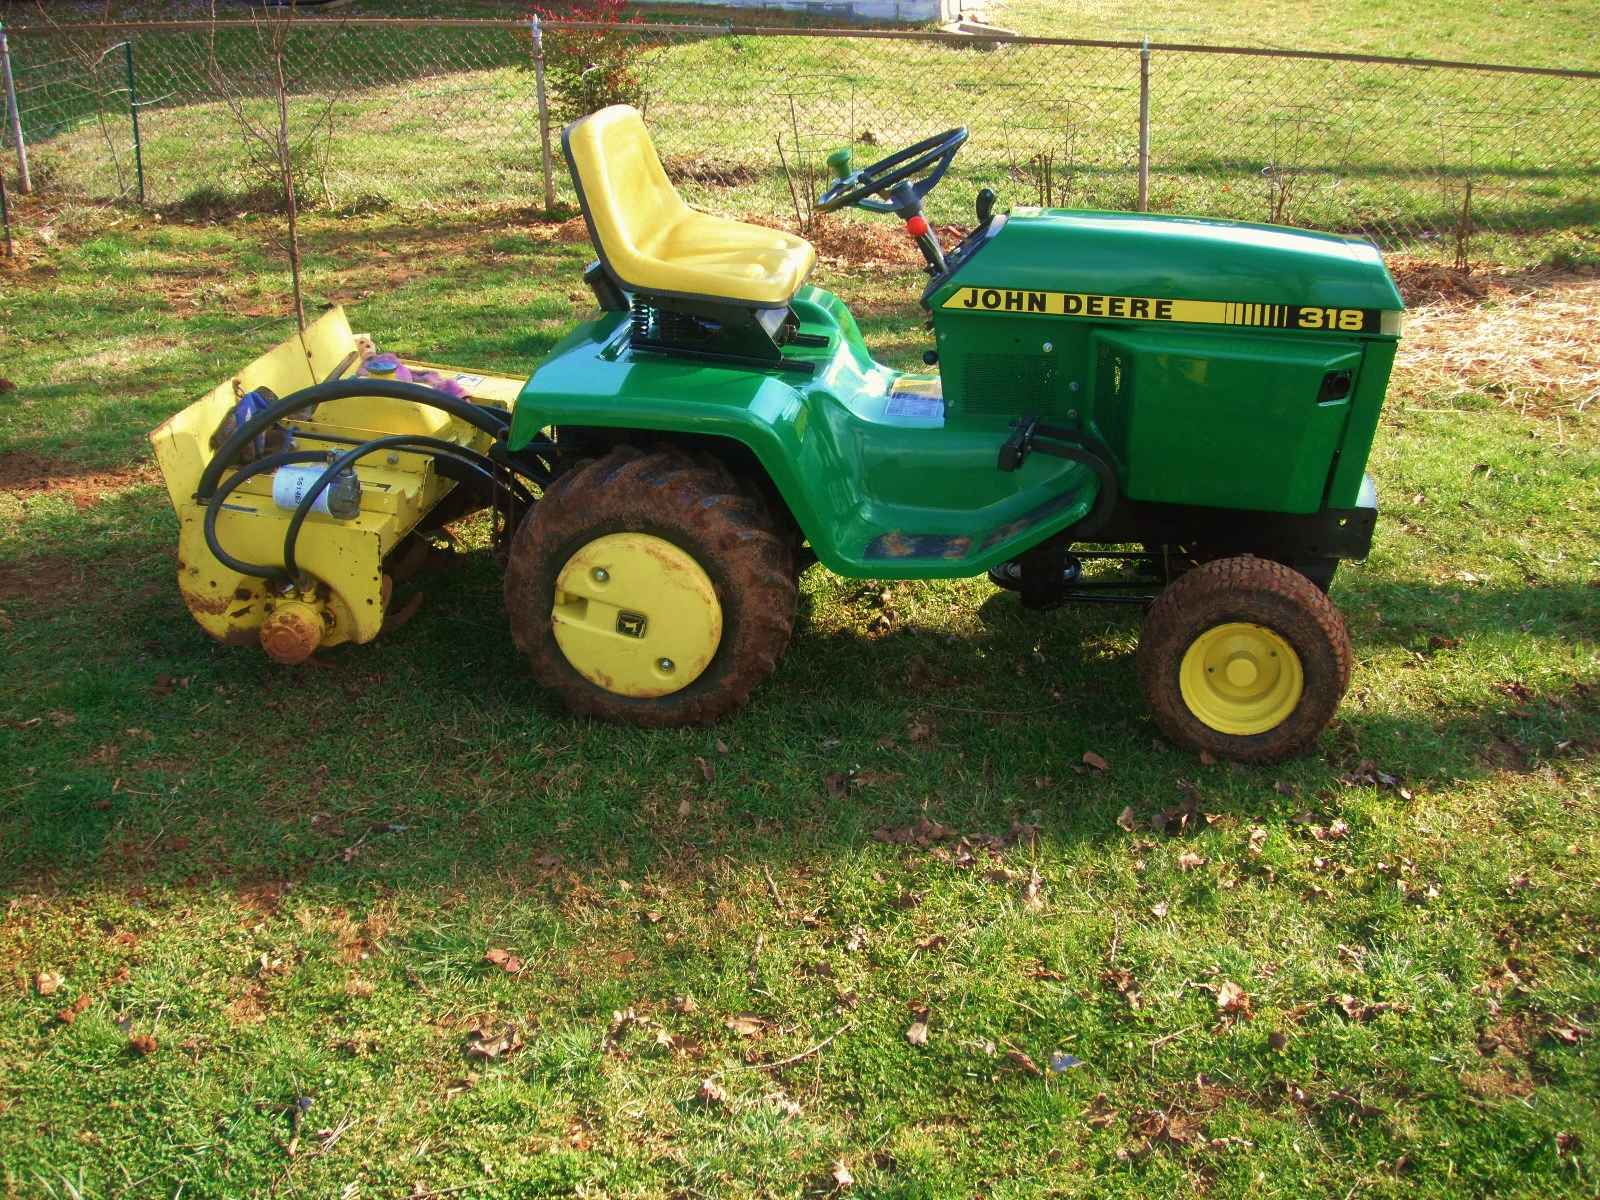 John Deere 318 Cultivator Cultivators 180 Wiring Diagram In Addition 445 Lawn Tractor X739 Signature Series